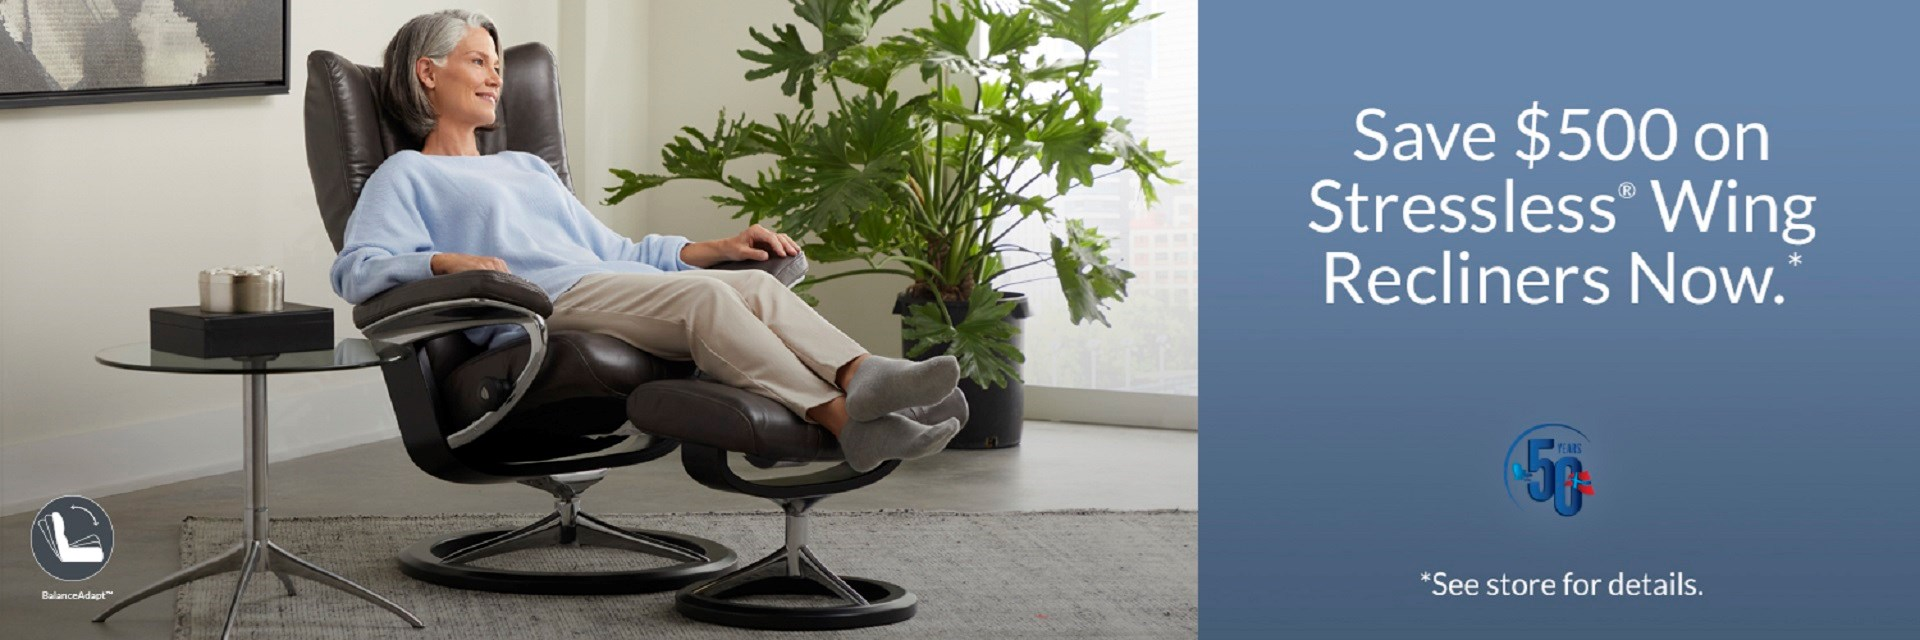 Save $500 on Stressless Wing Recliners Now